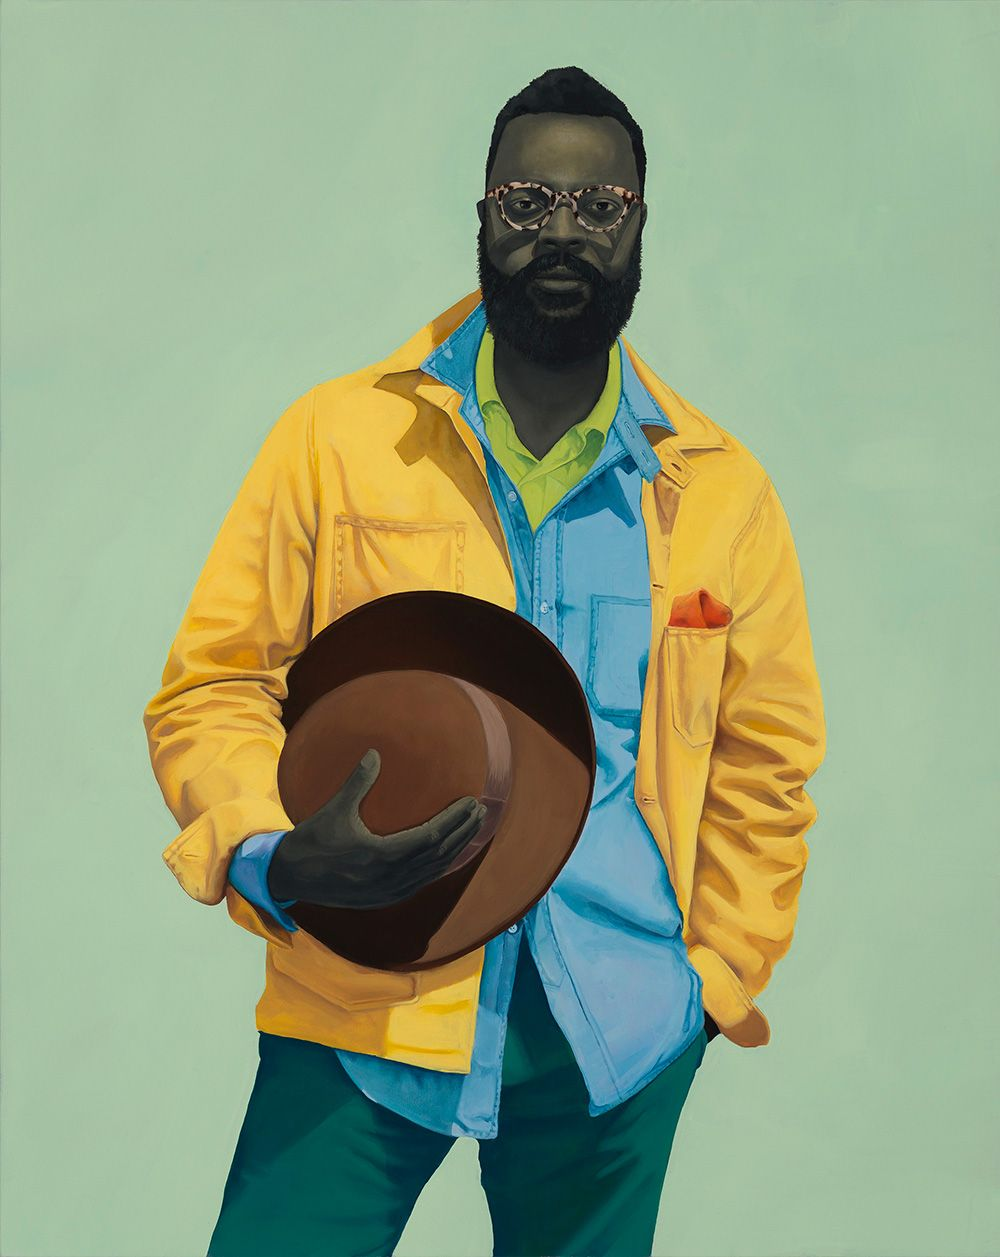 <p>Baltimorean artist Amy Sherald paints African-American Portraits like no one else. Her life-sized portraits main subjects are only Afro-Americain, but one of her very own signature is how Sherald p